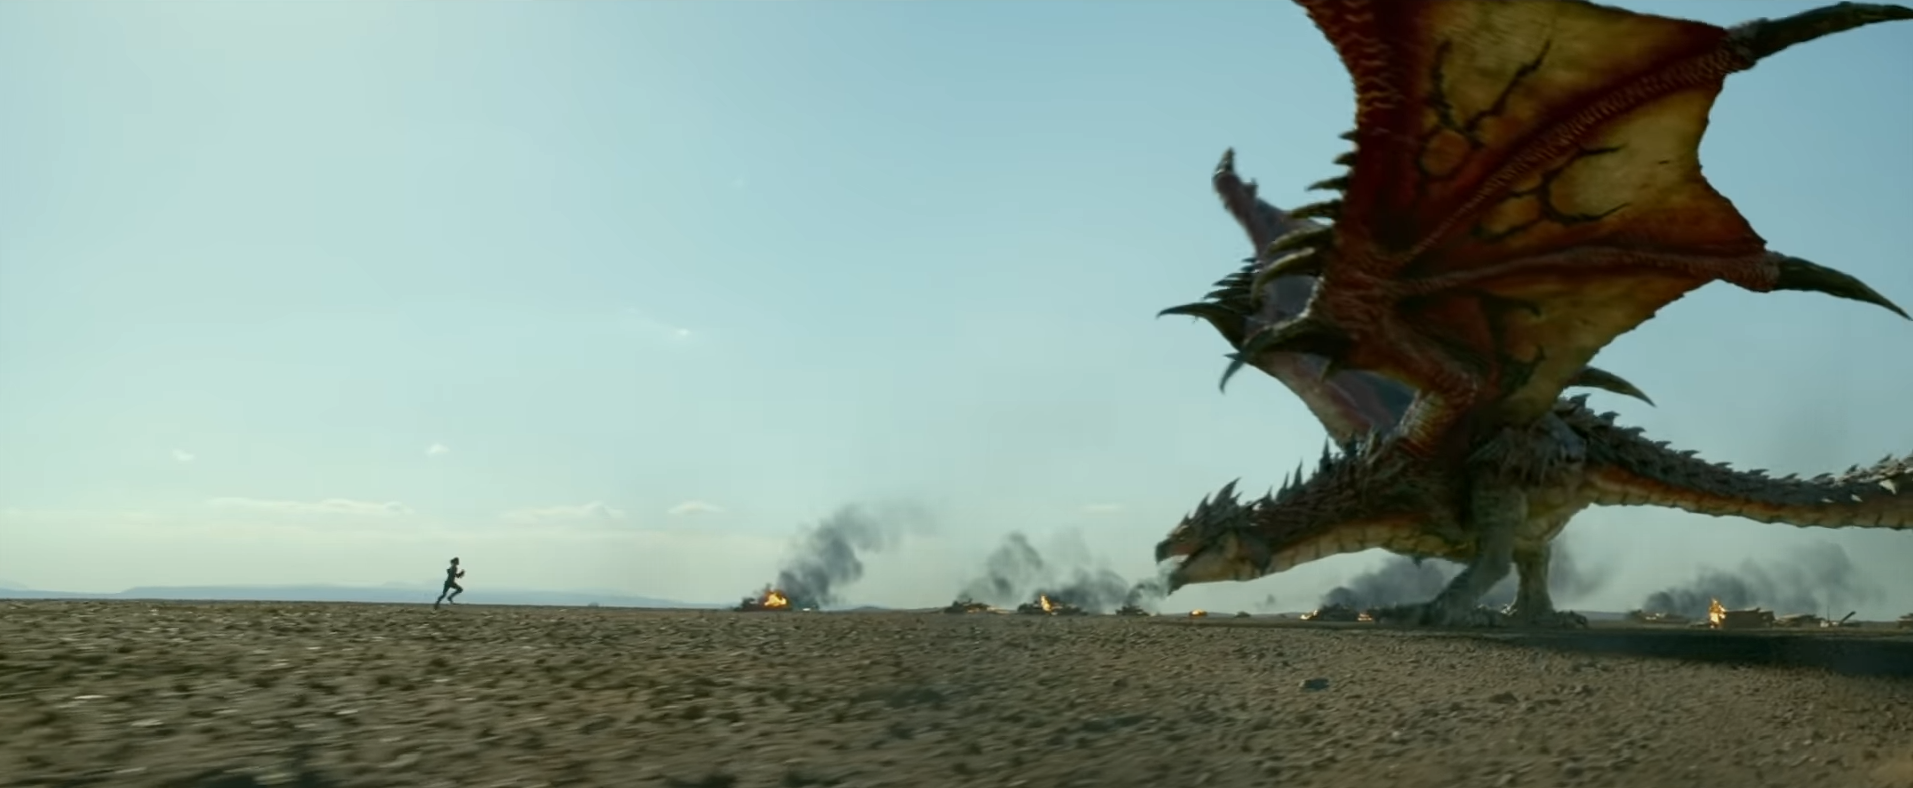 Dragon Creature from Monster Hunter video game movie trailer on Cinematic Doctrine